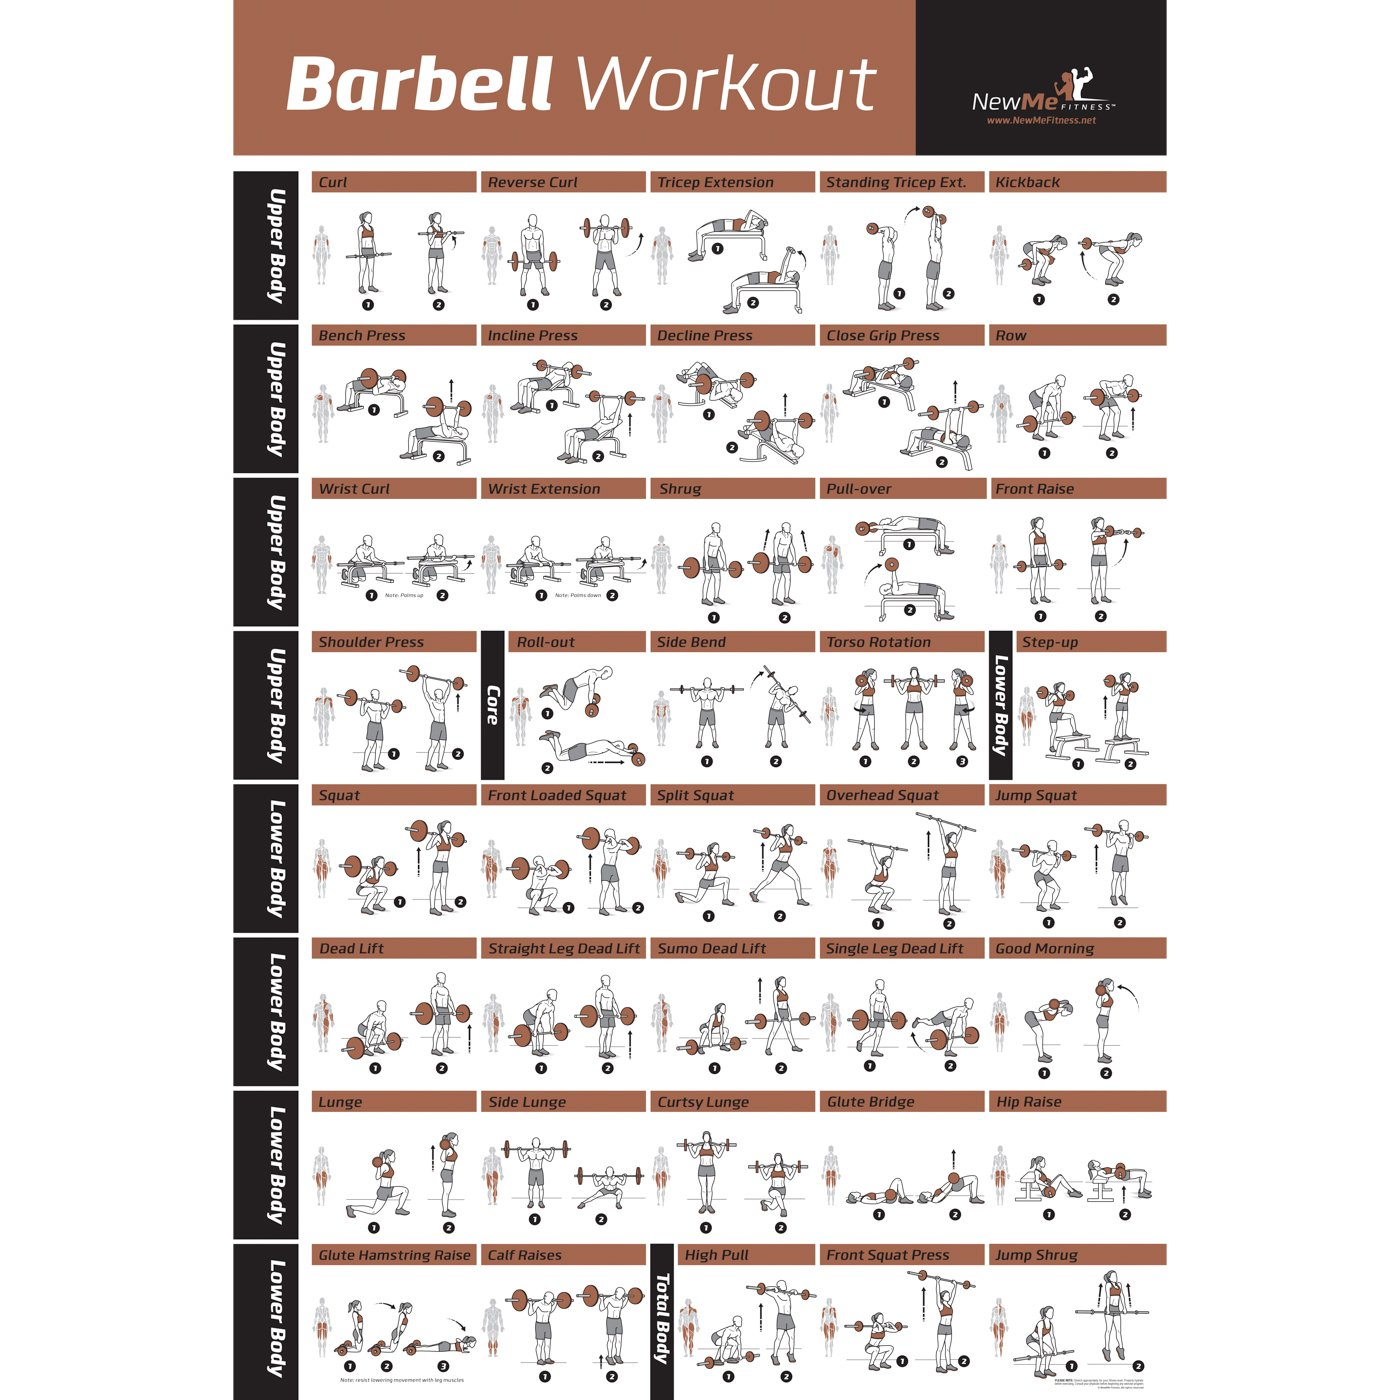 Free Weights Total Body Workout: BARBELL WORKOUT EXERCISE POSTER LAMINATED